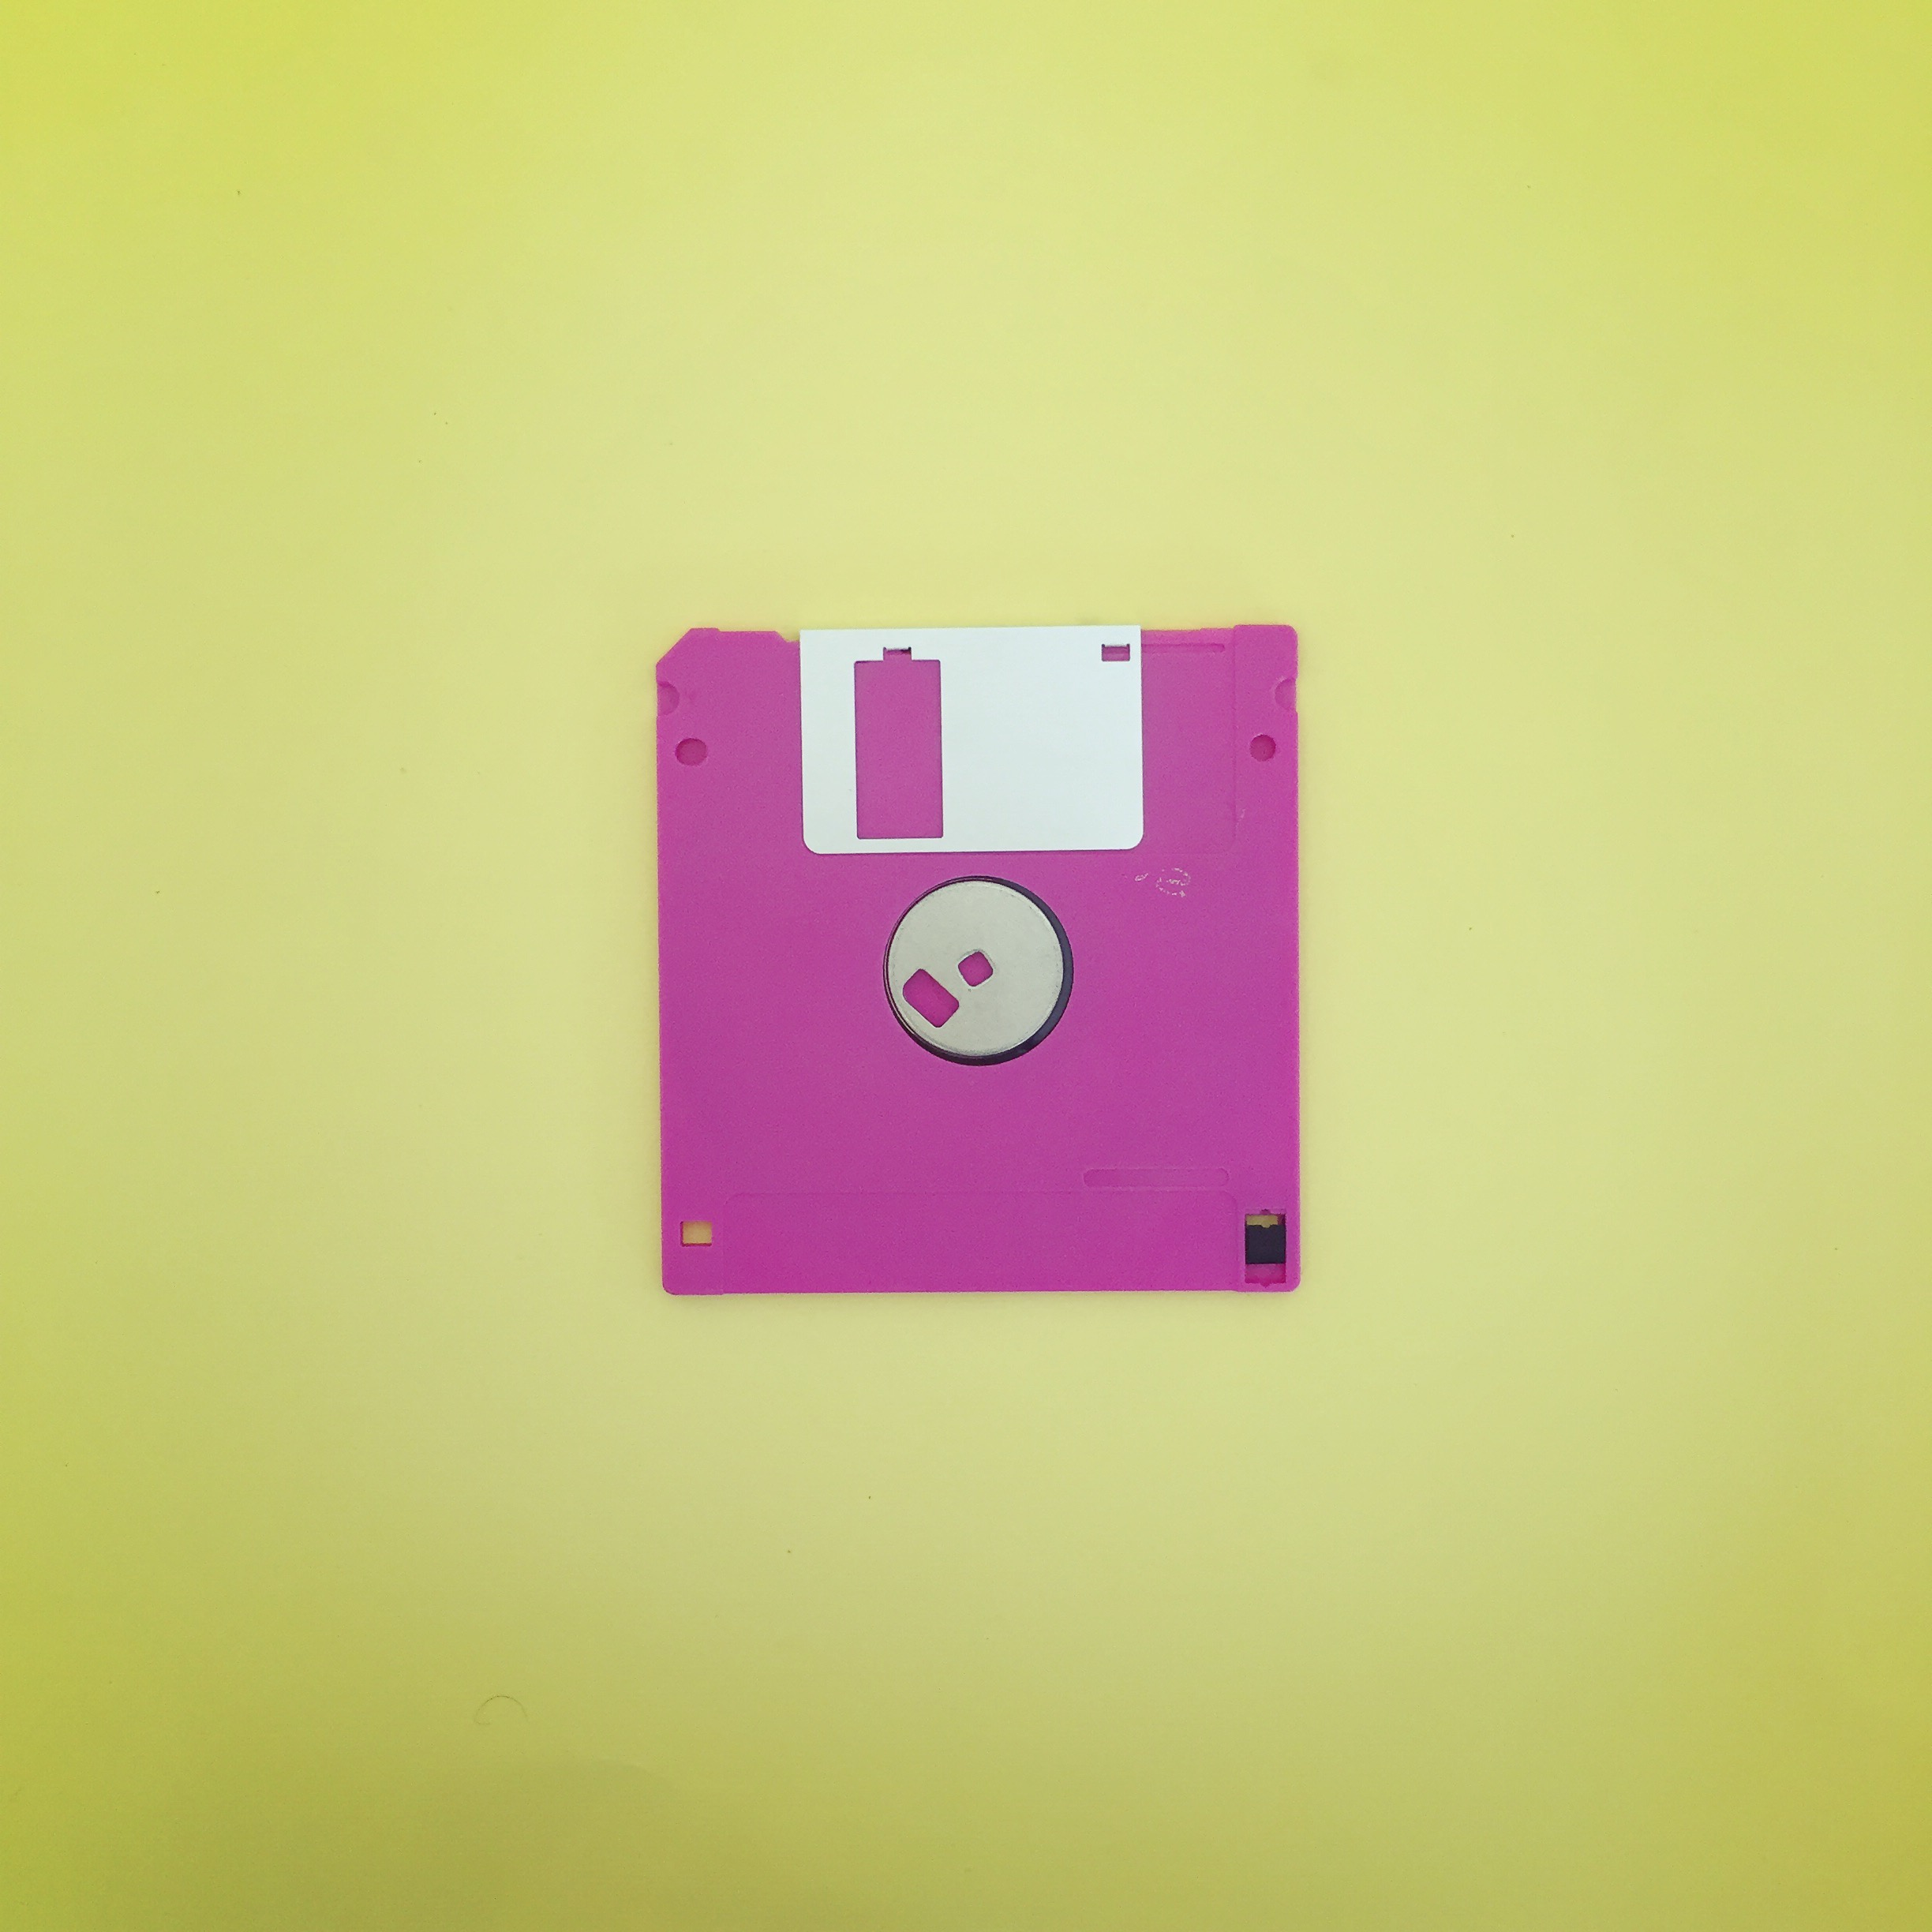 Tinker Friday Floppy Disk